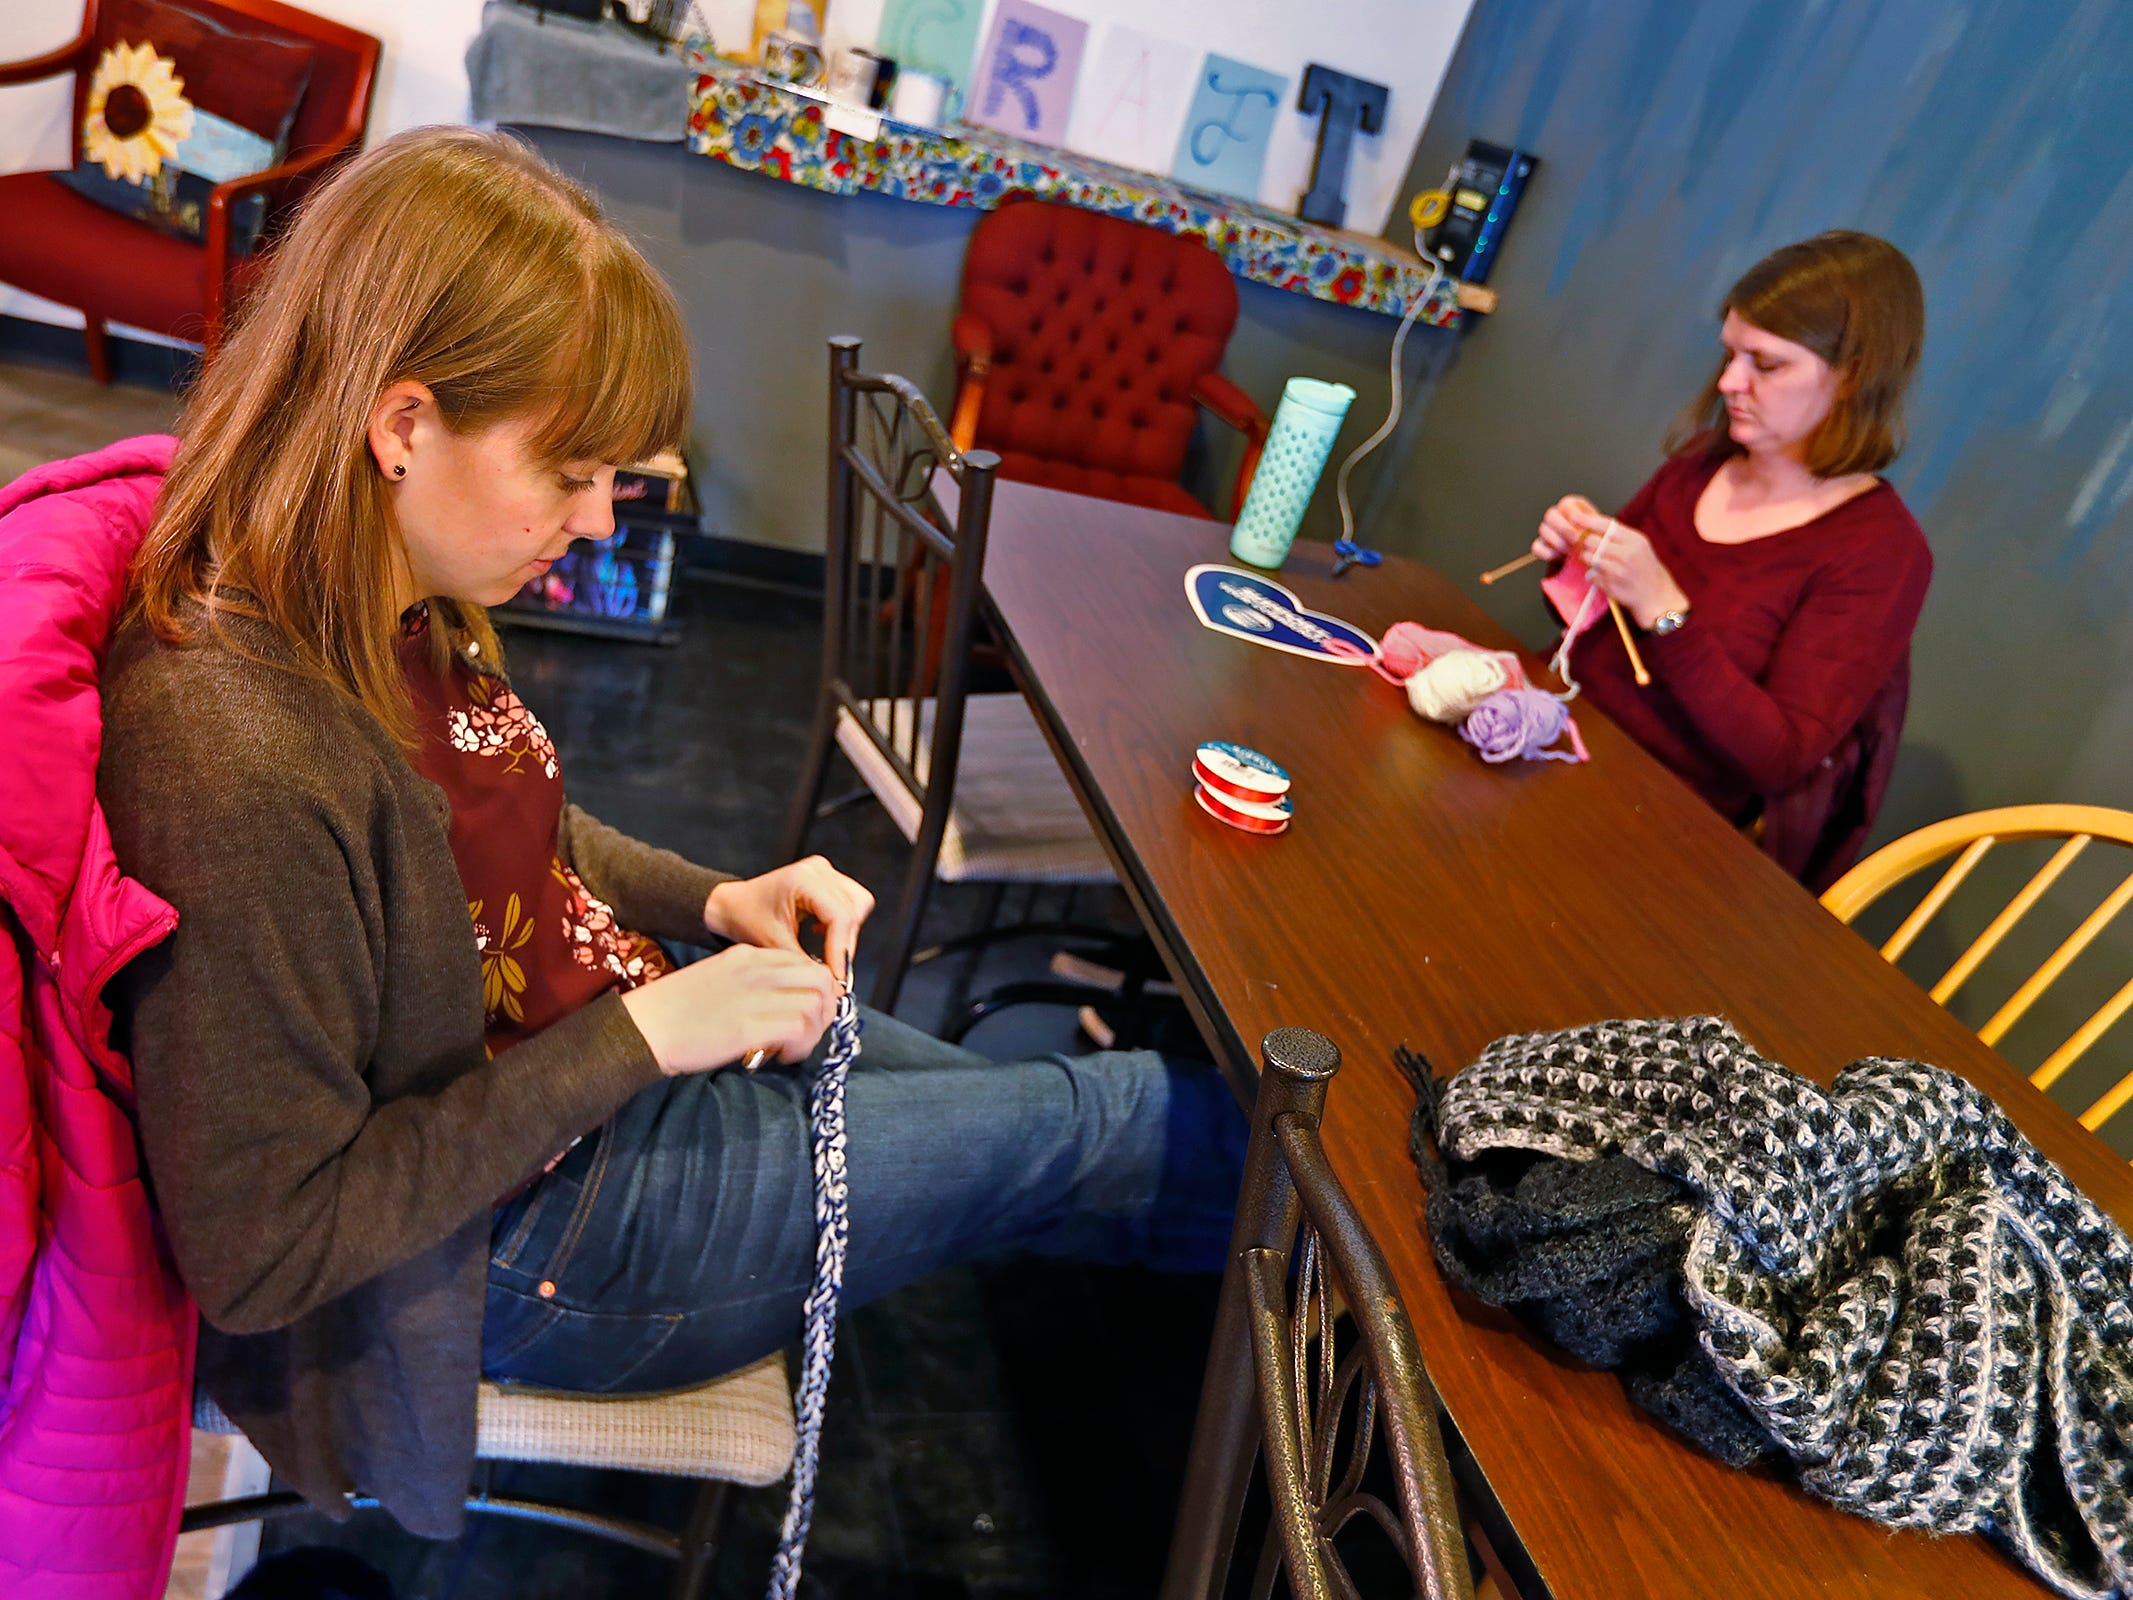 Jenna Page, left, and Kelly Carter knit hats and scarves for the homeless on Give Back Day at ReCraft, Tuesday, Dec. 11, 2018.  ReCraft was born out of Bethany Daugherty's love of crafting and her interest in environmental activism.  At the secondhand craft and hobby store, Daugherty also teaches workshops.  Sustainability and environmentalism are the focus of the store.